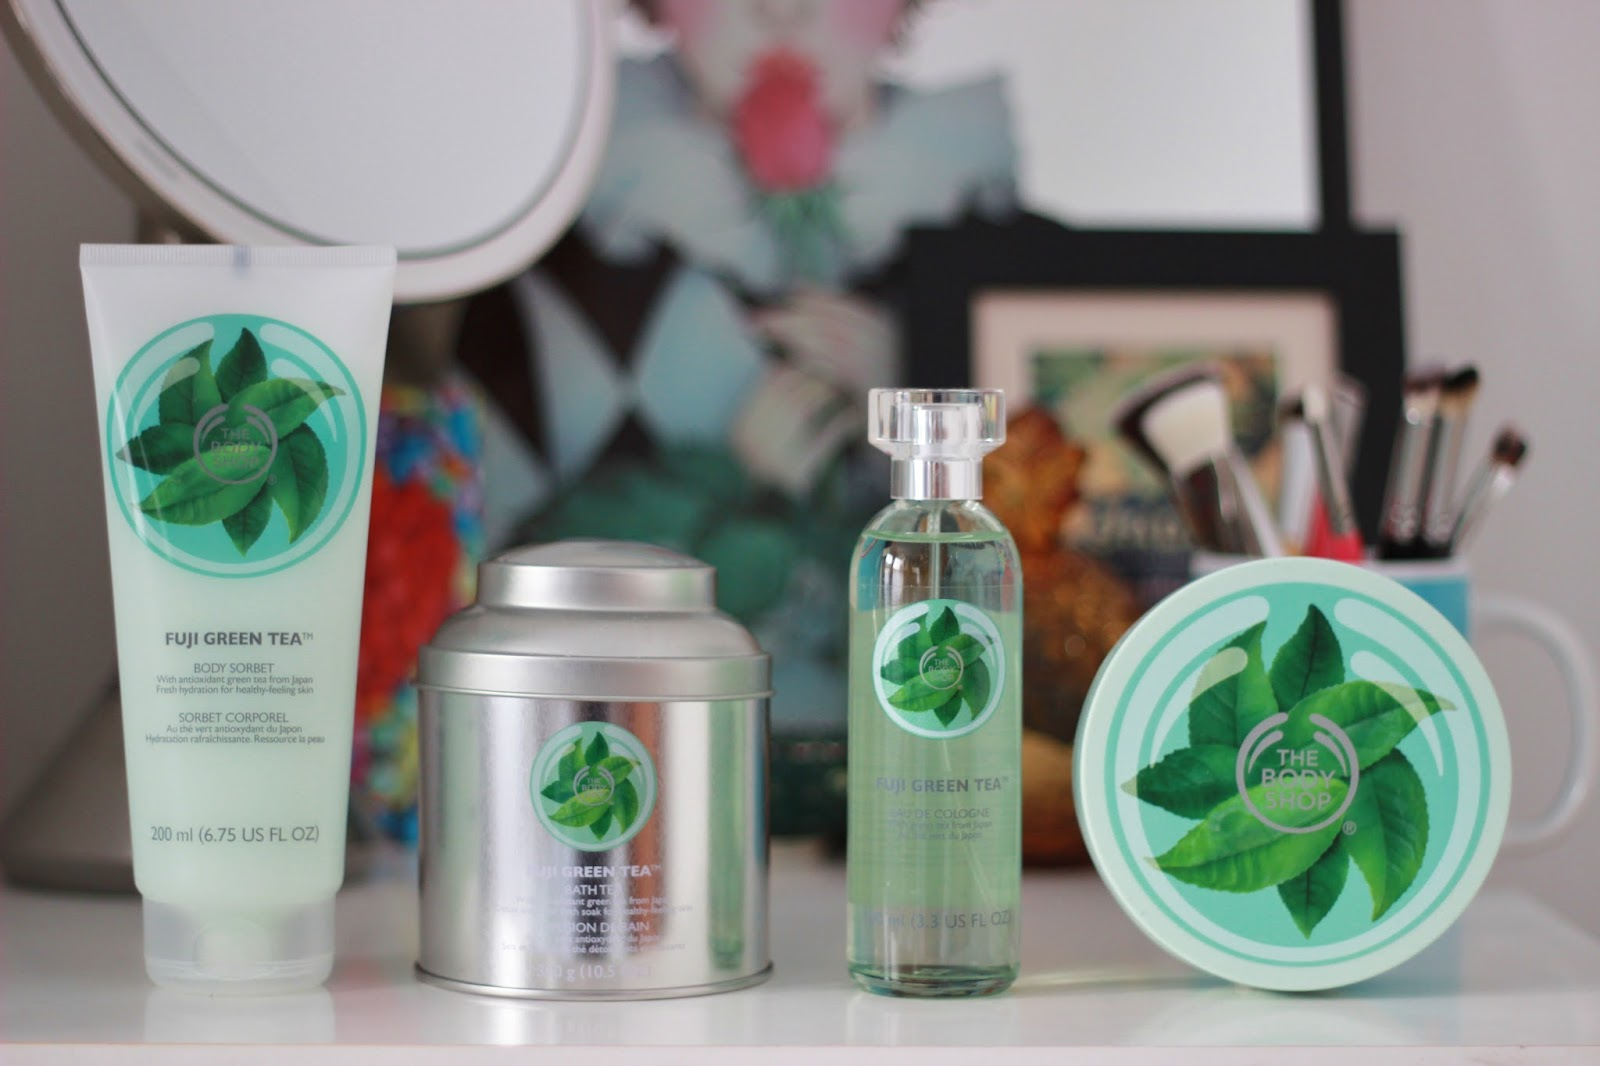 the body shop fuji green tea bath and body range